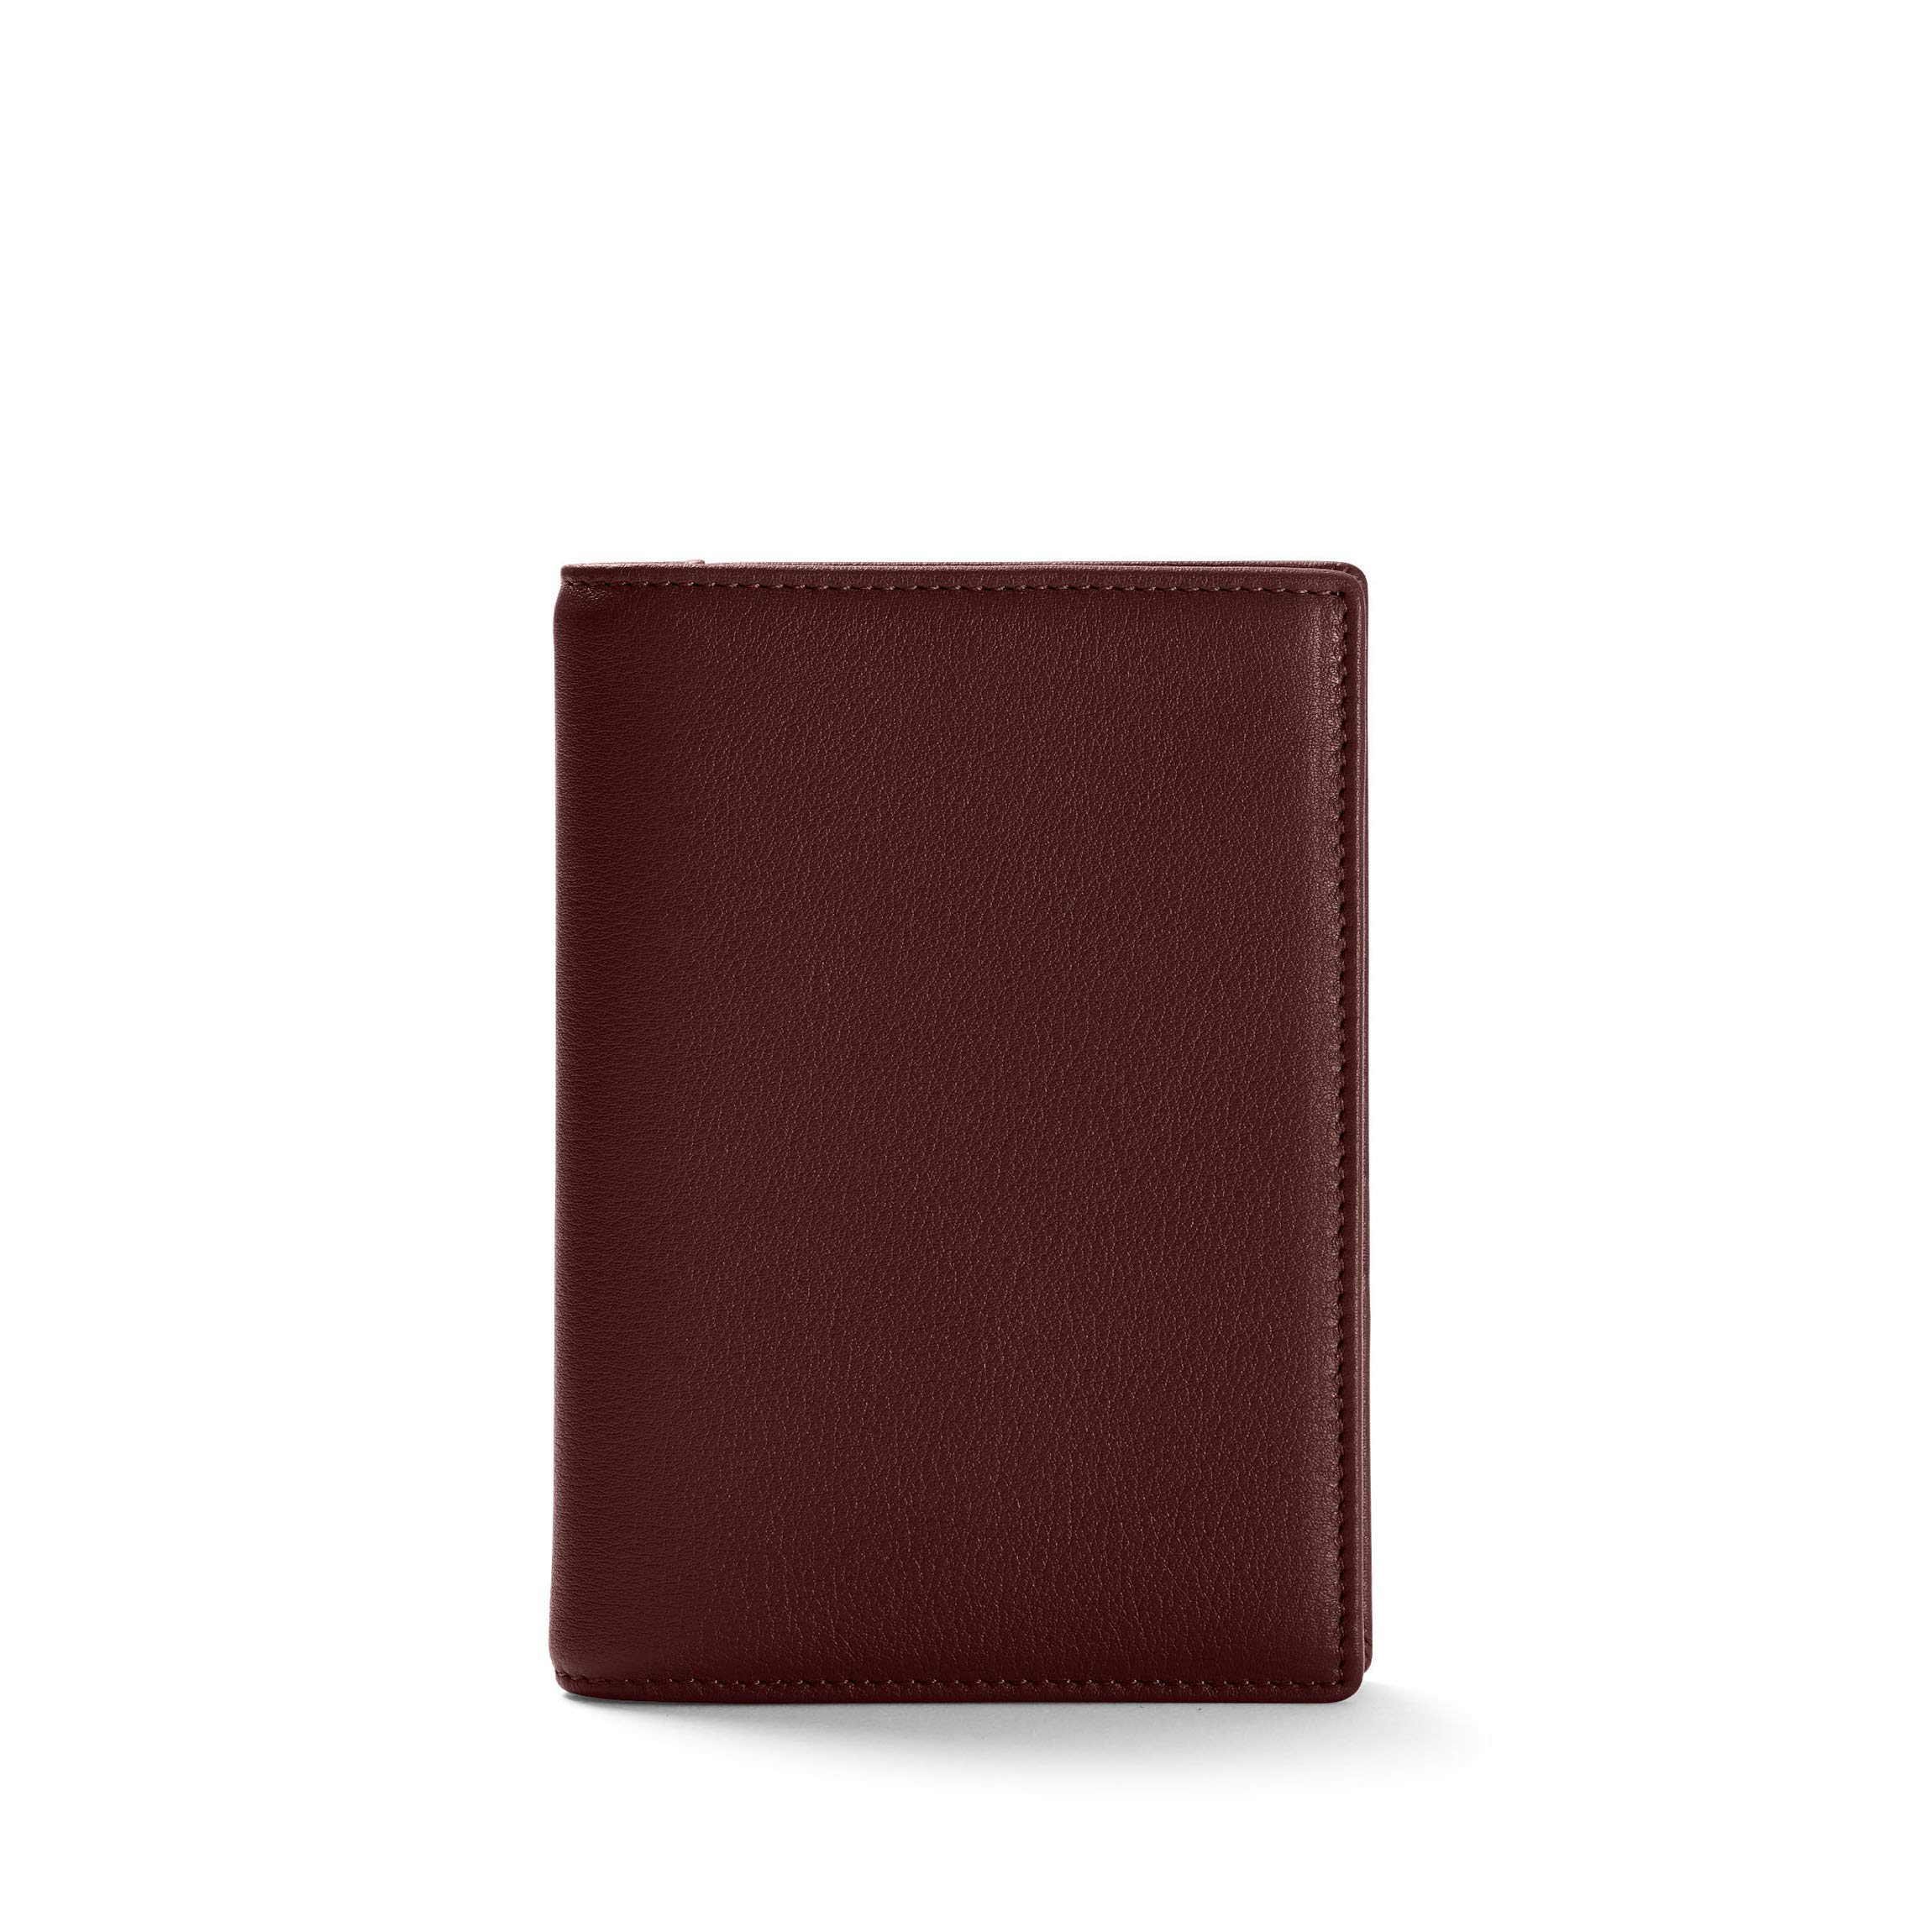 Leatherology Bordeaux Deluxe Passport Cover by Leatherology